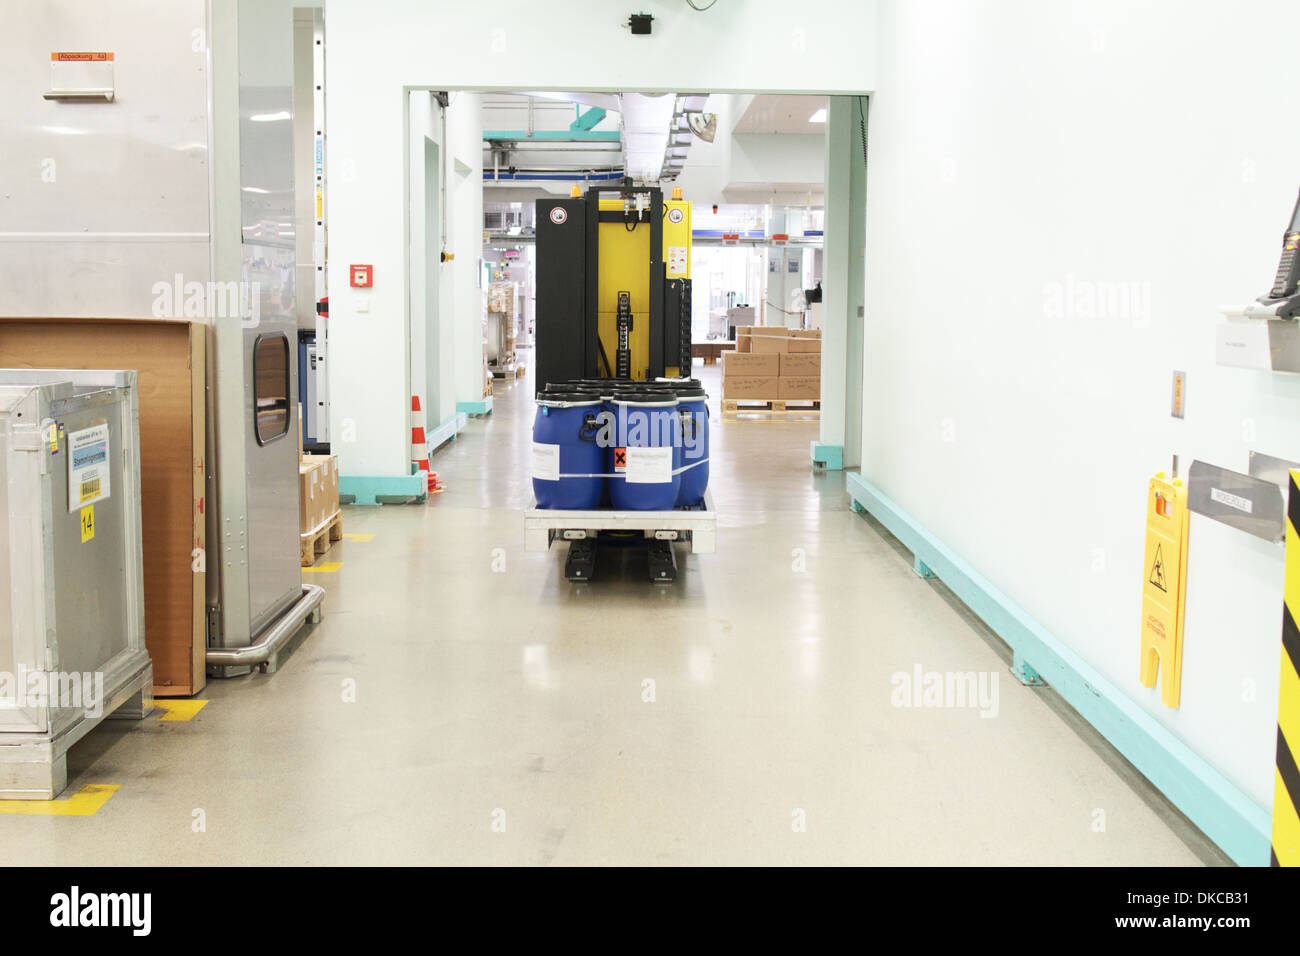 A self-acting fourwheel lifting truck carrying barrels with chemicals in an industrial hall of pharmacy. - Stock Image